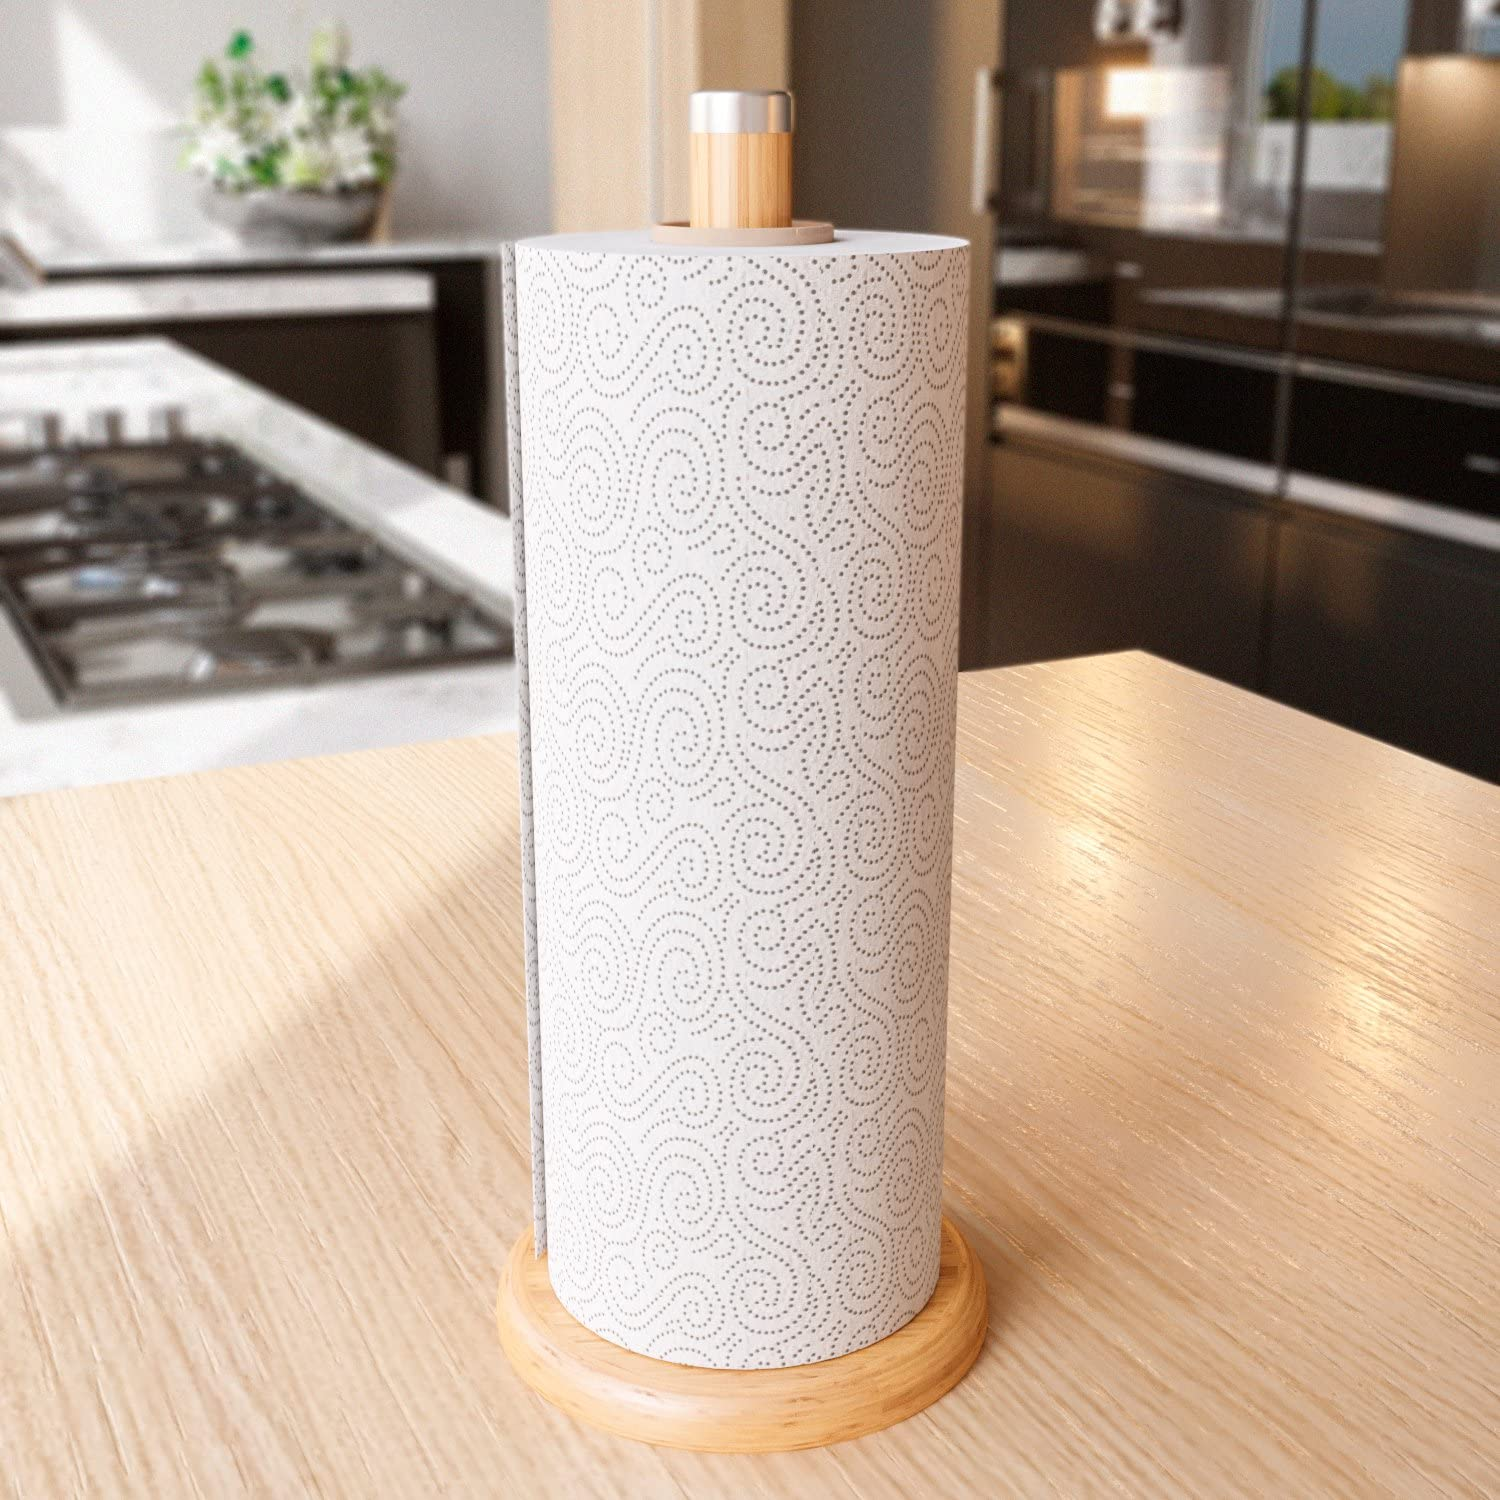 Home Intuition Rustic Bamboo Wood Counter Top Slim Paper Towel Holder